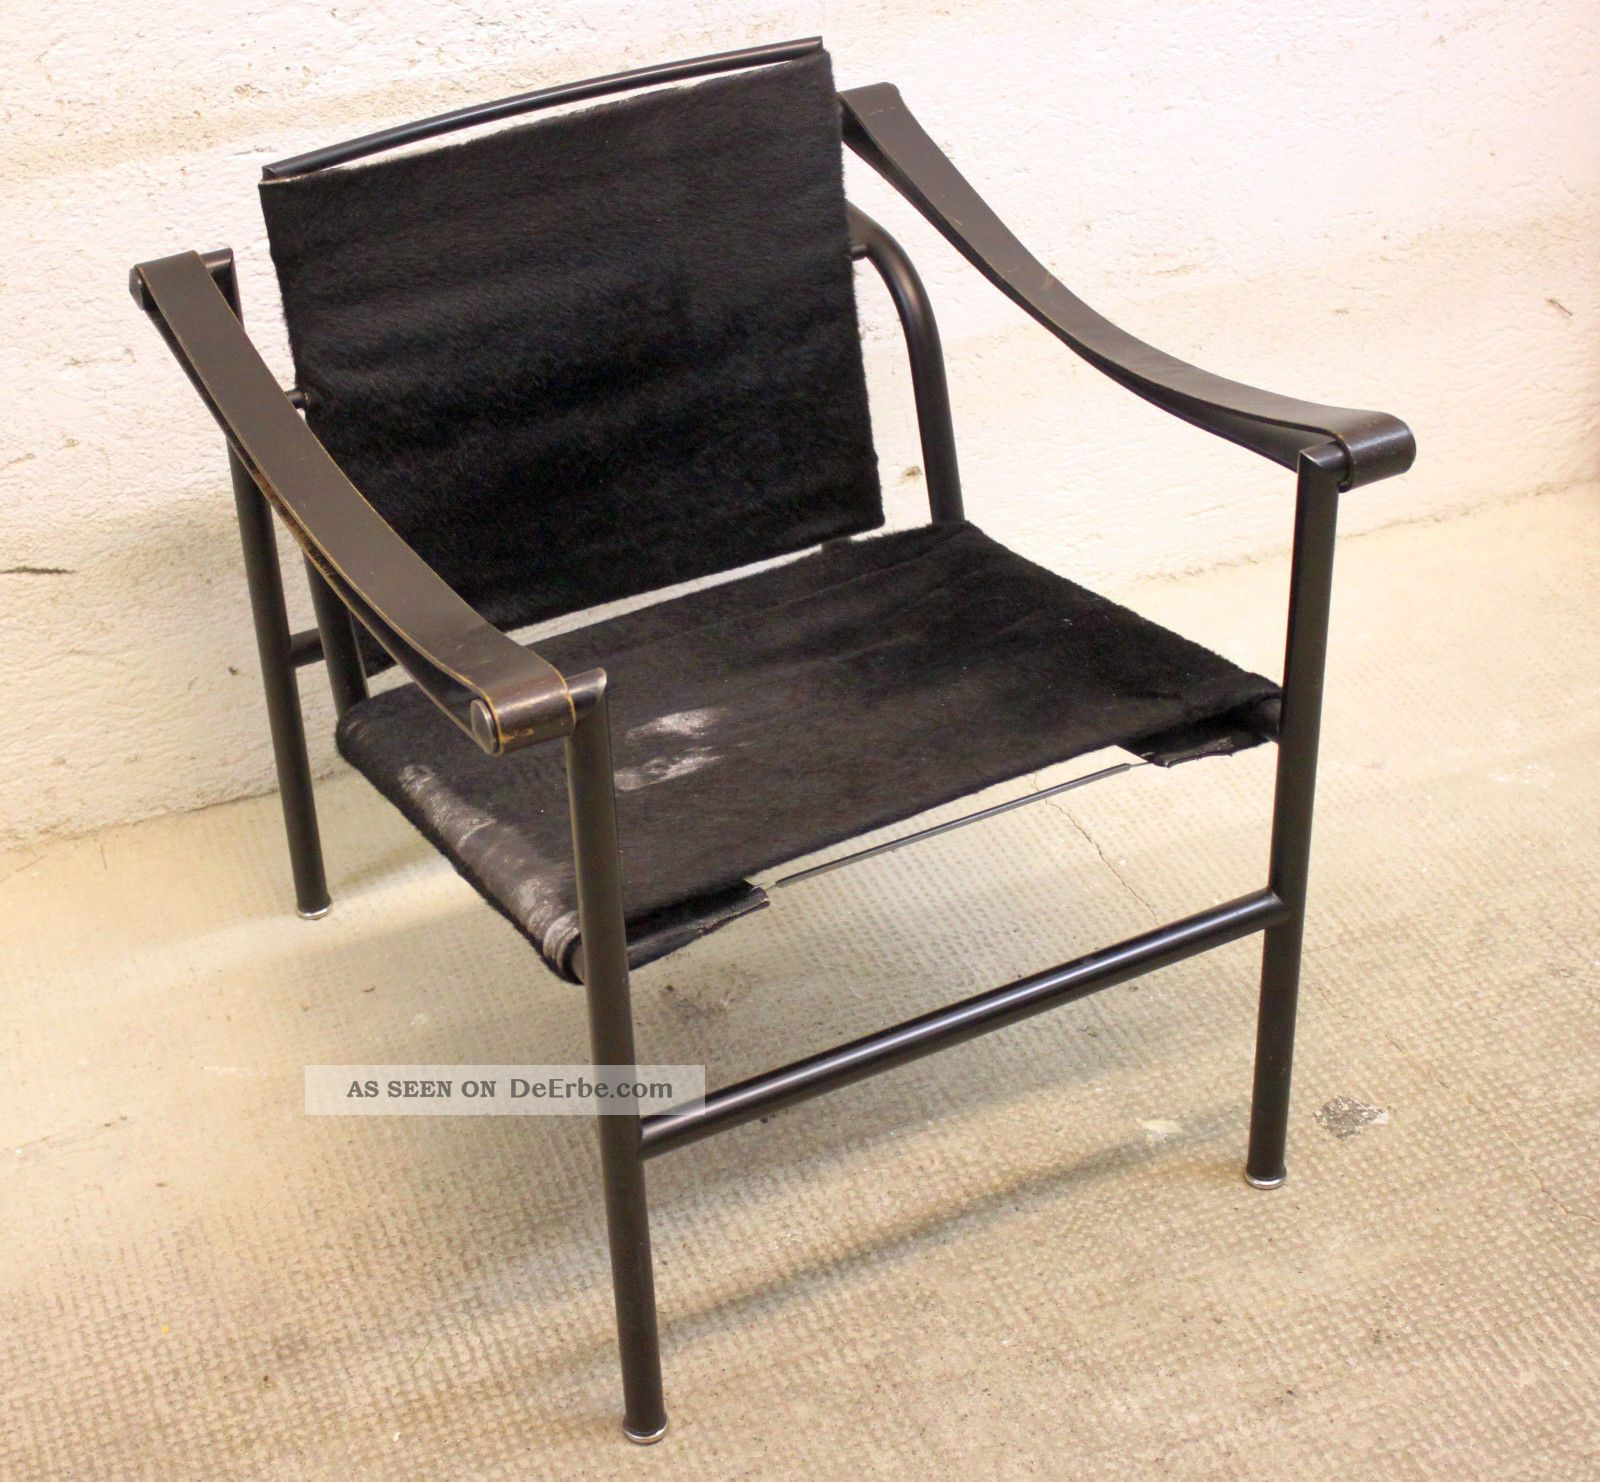 le corbusier sessel lc1 2 mit rechnung von 1976. Black Bedroom Furniture Sets. Home Design Ideas